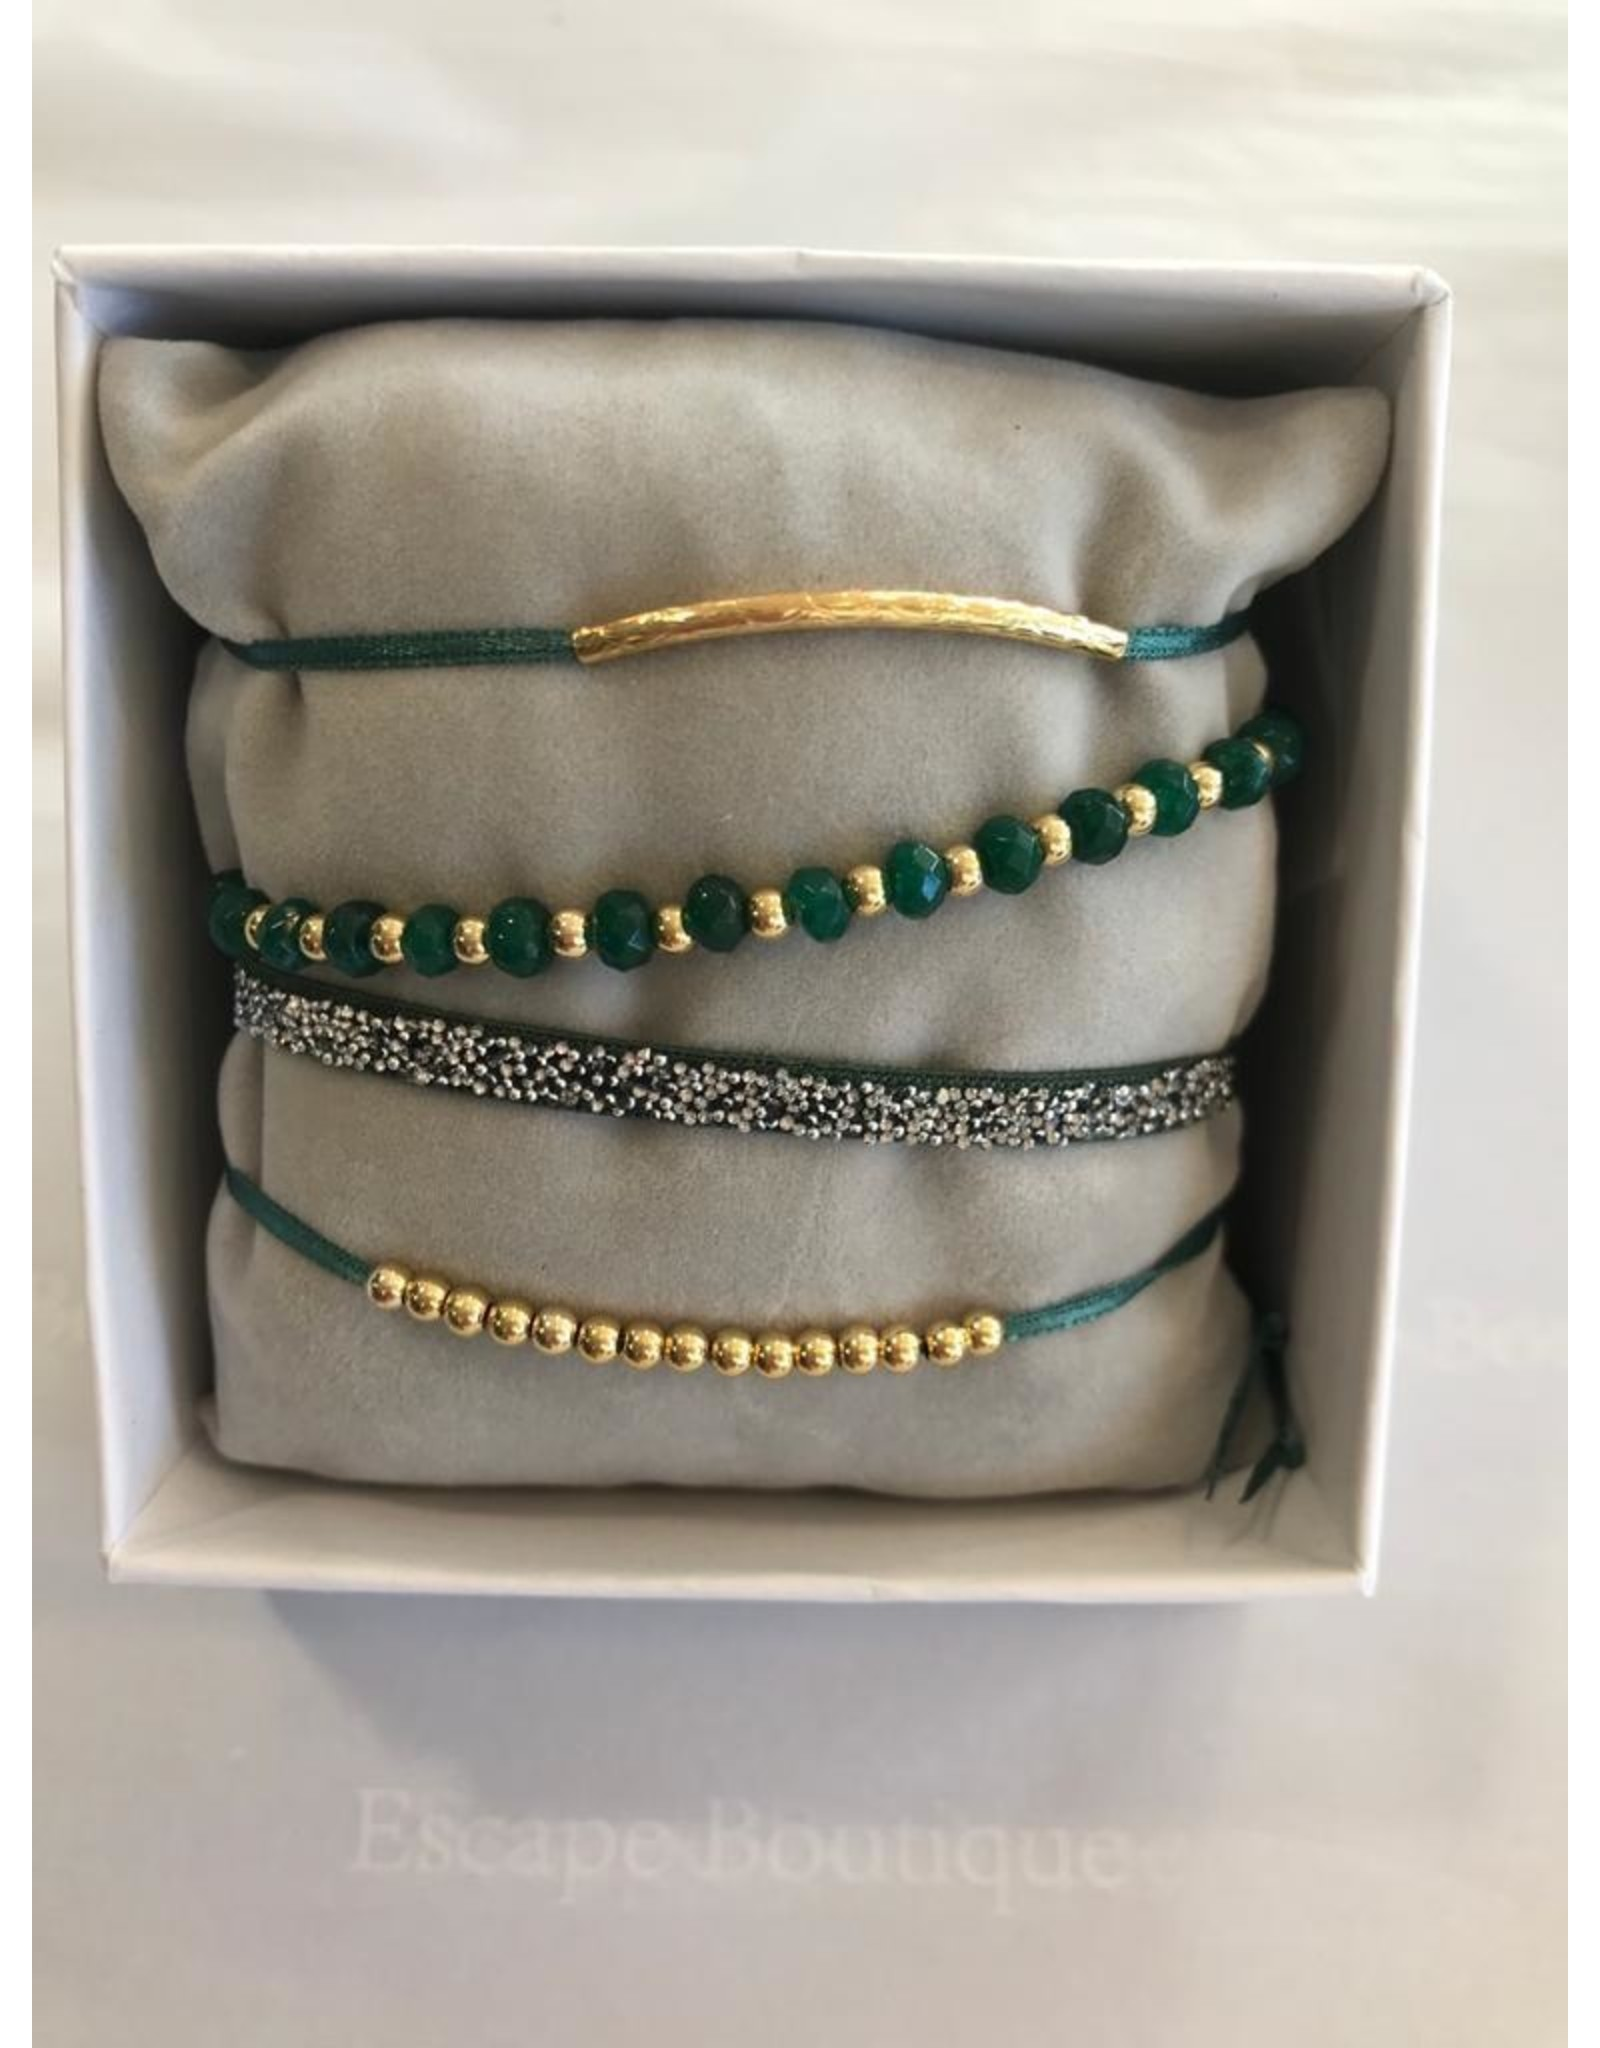 Les Interchangeables Les Interchageables - Strass Box Malicieuse gold